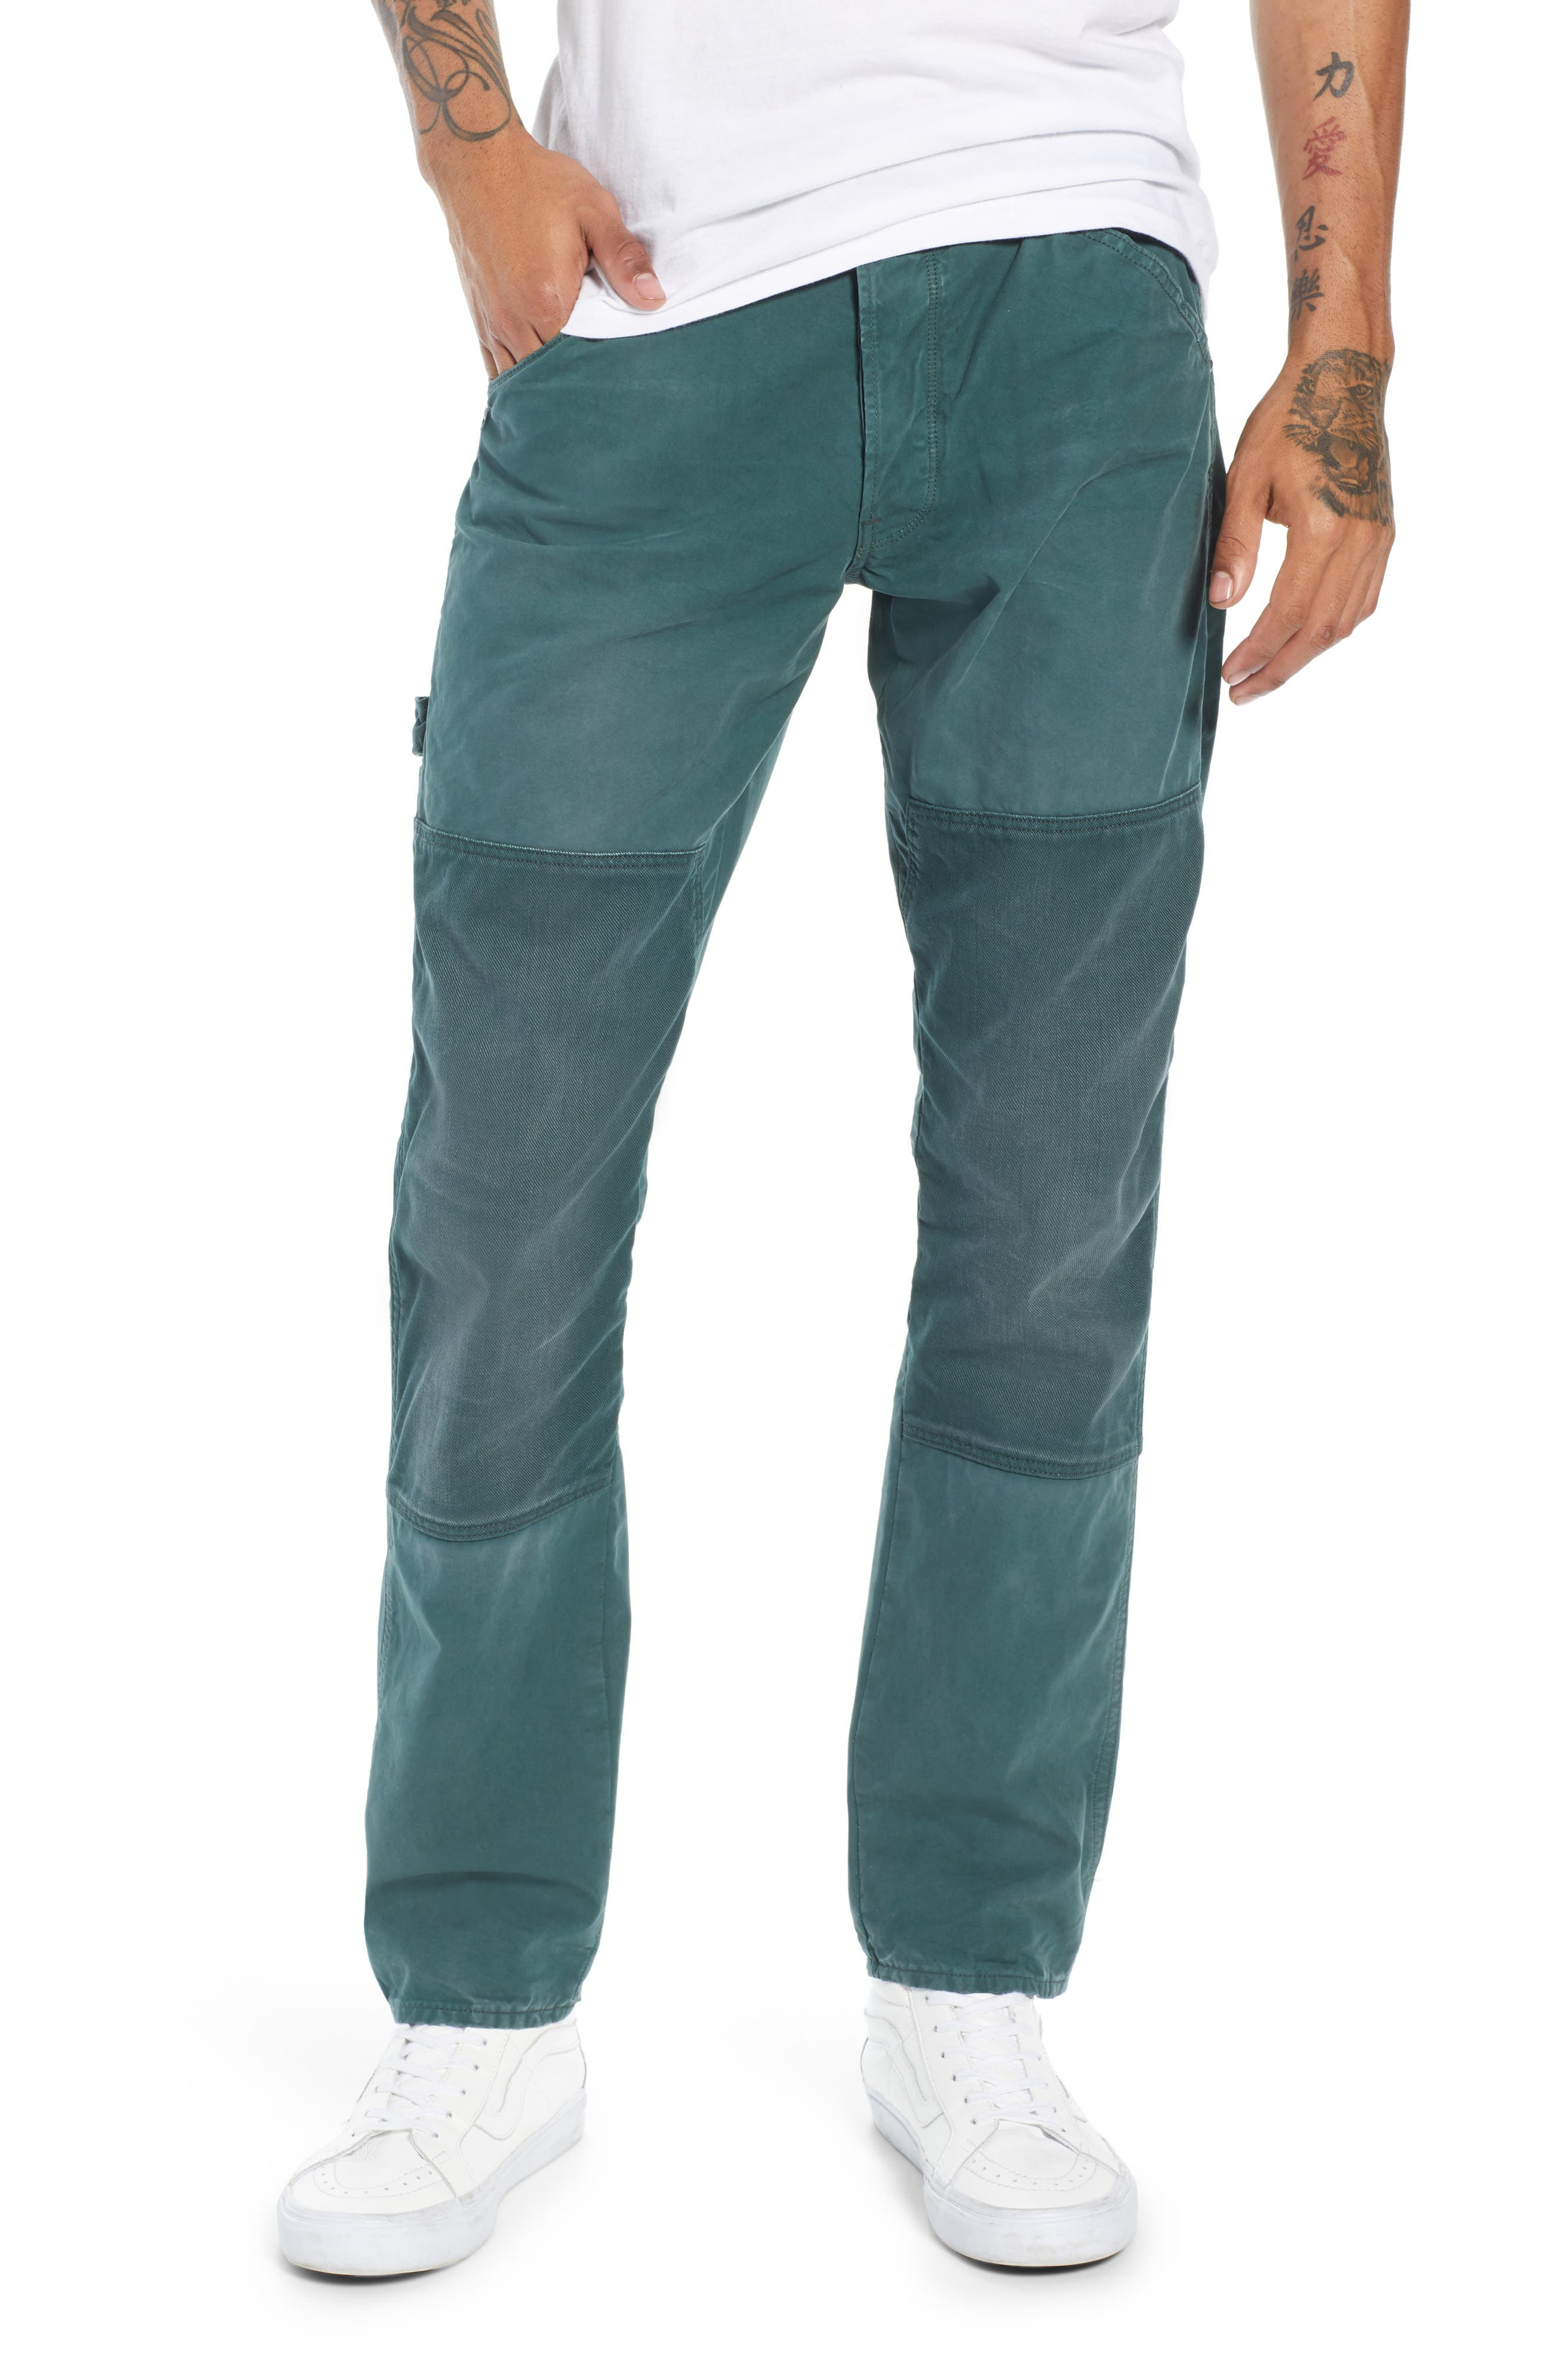 G-STAR RAW Uotf Faroes Slim Tapered Pants in Balsam